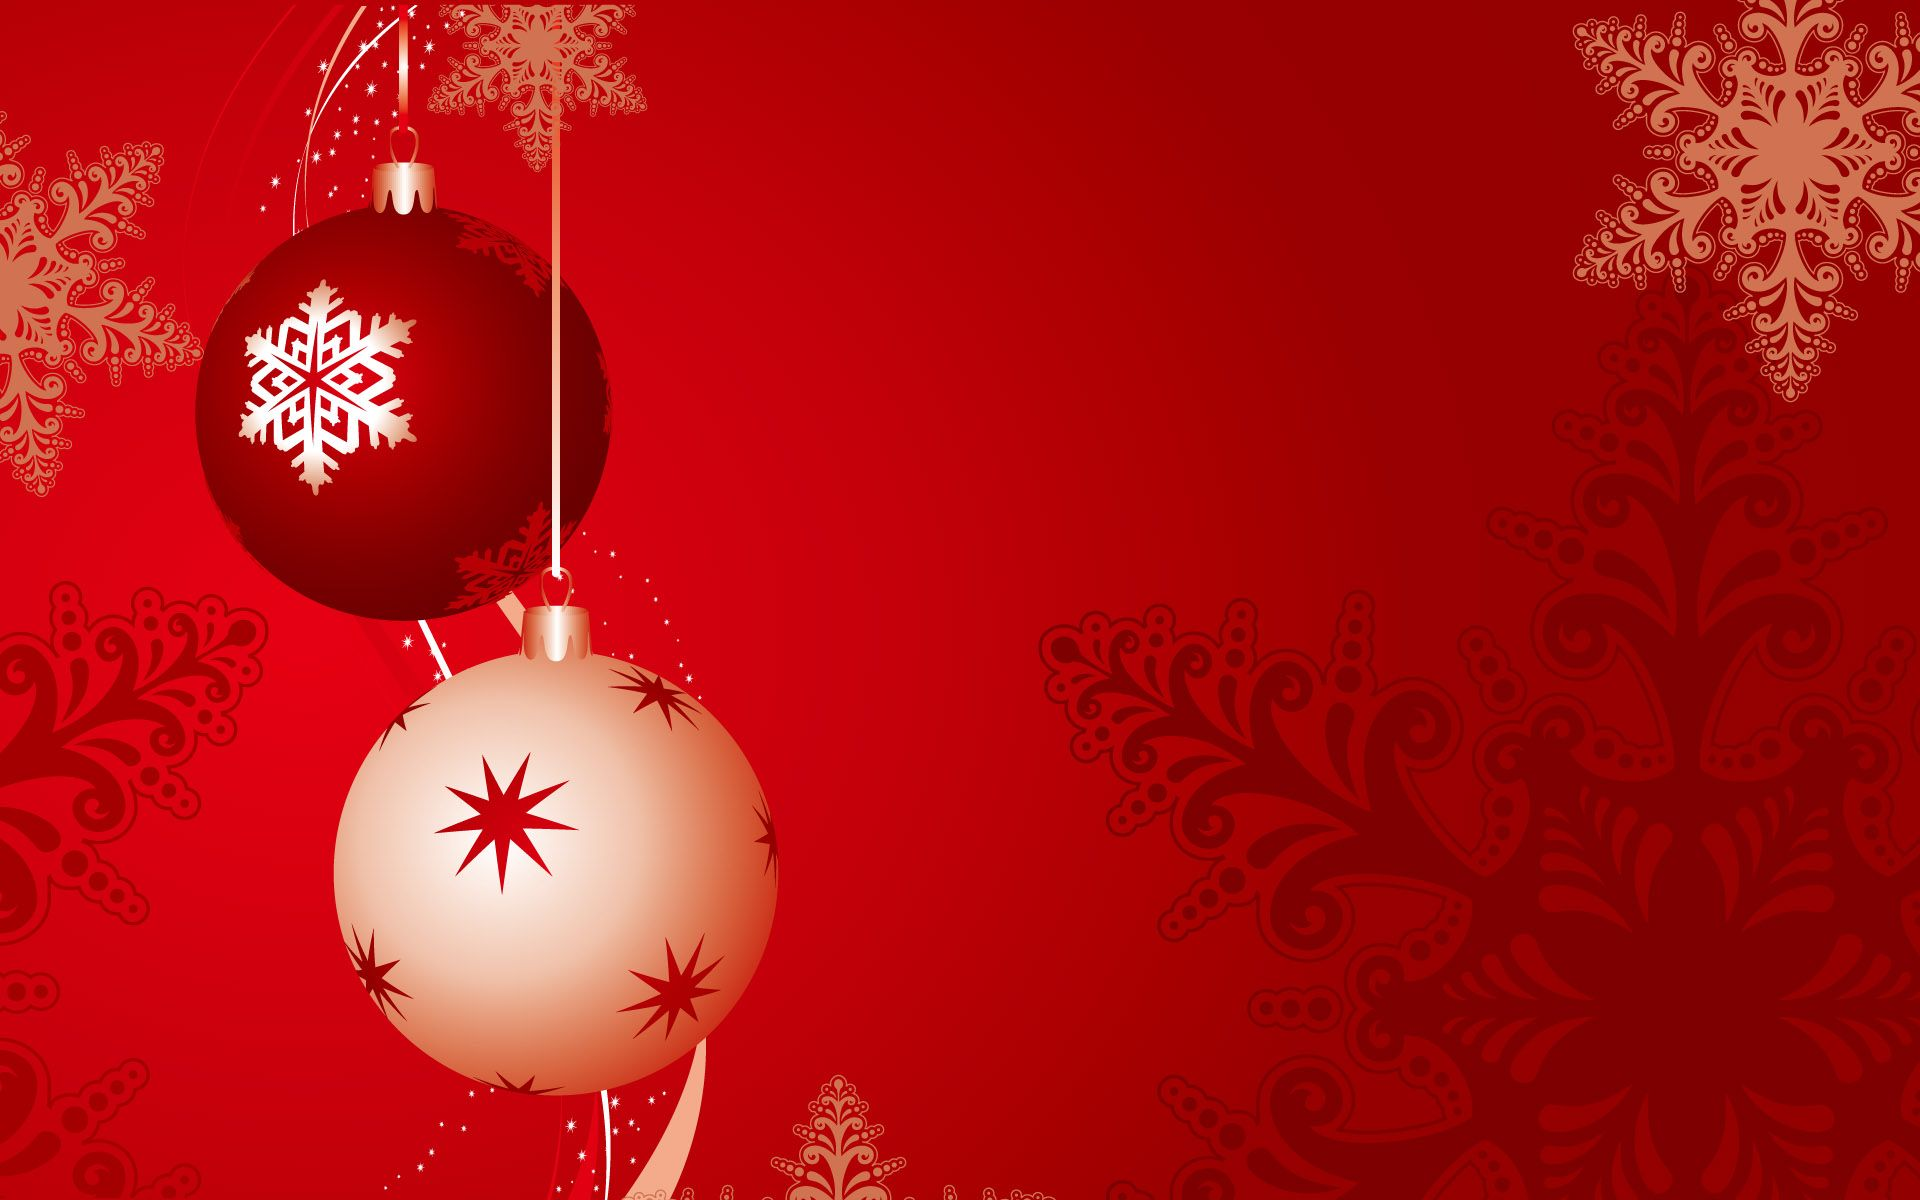 Christmas Background Hd Images.Pin On Happy Holidays